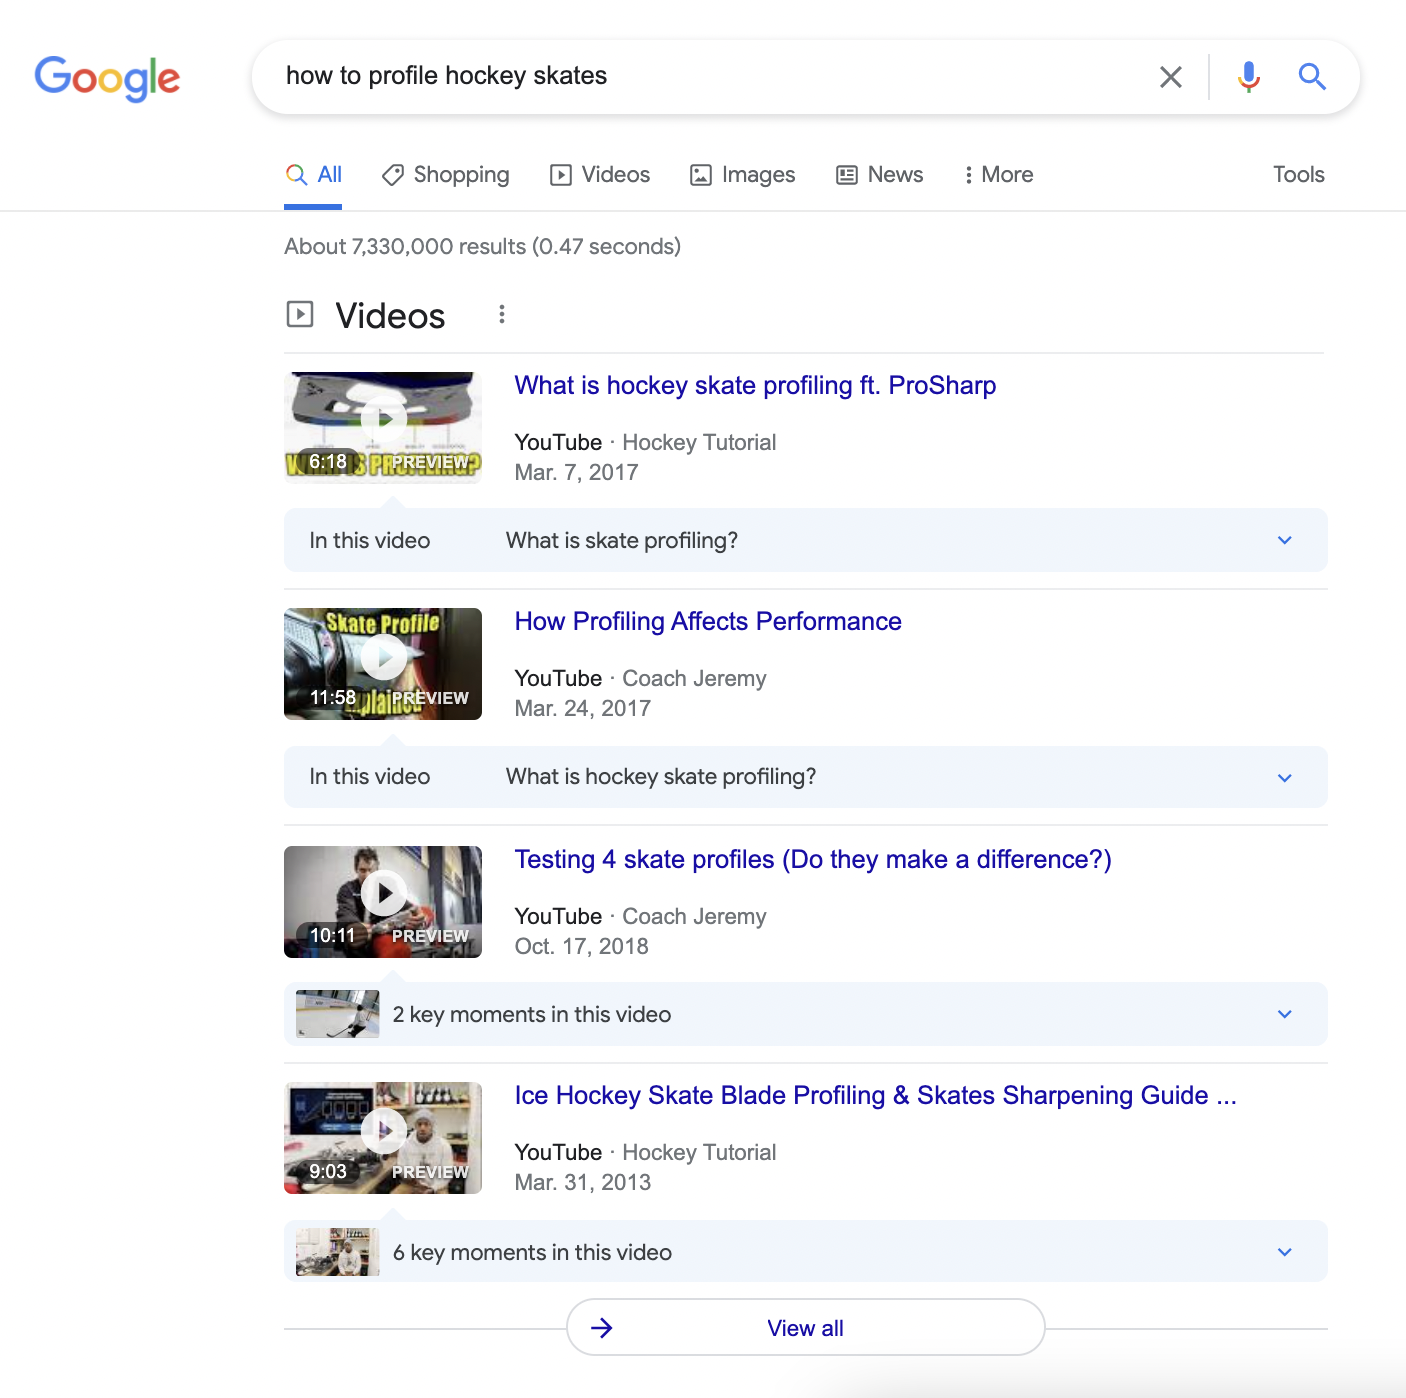 Google display video guides